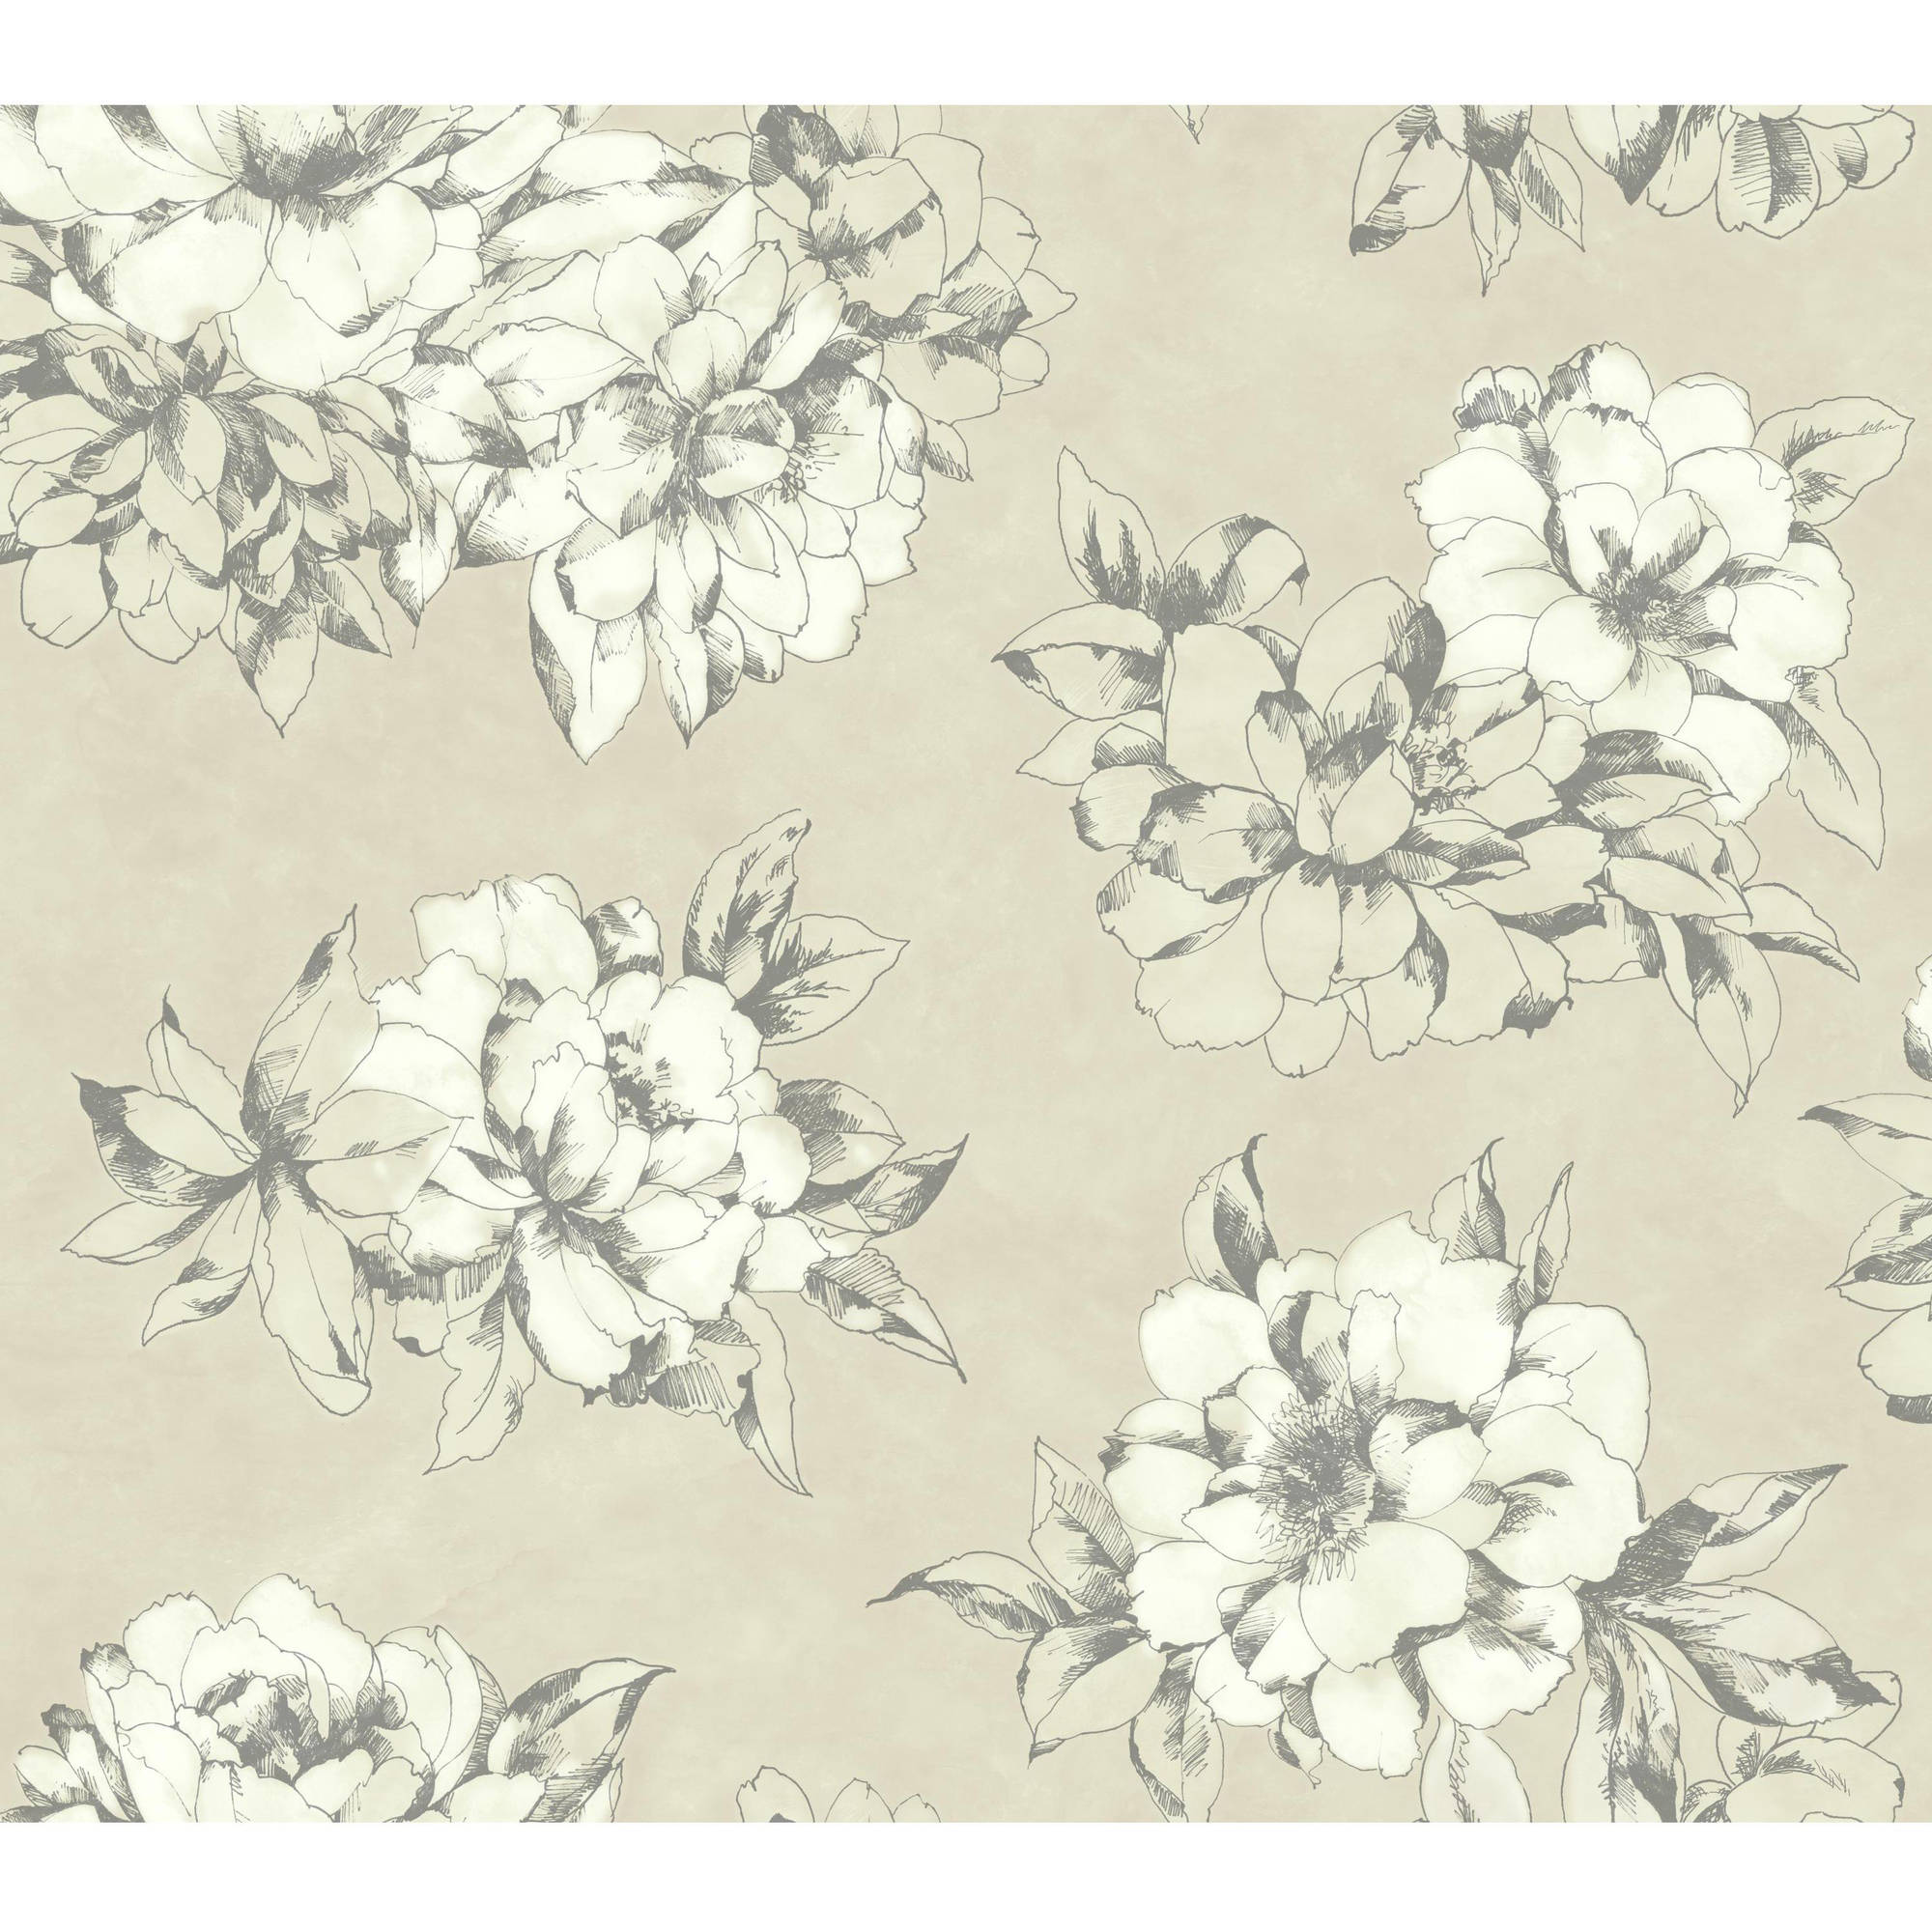 Black White Watercolor Floral Wallpaper Walmart Com Walmart Com